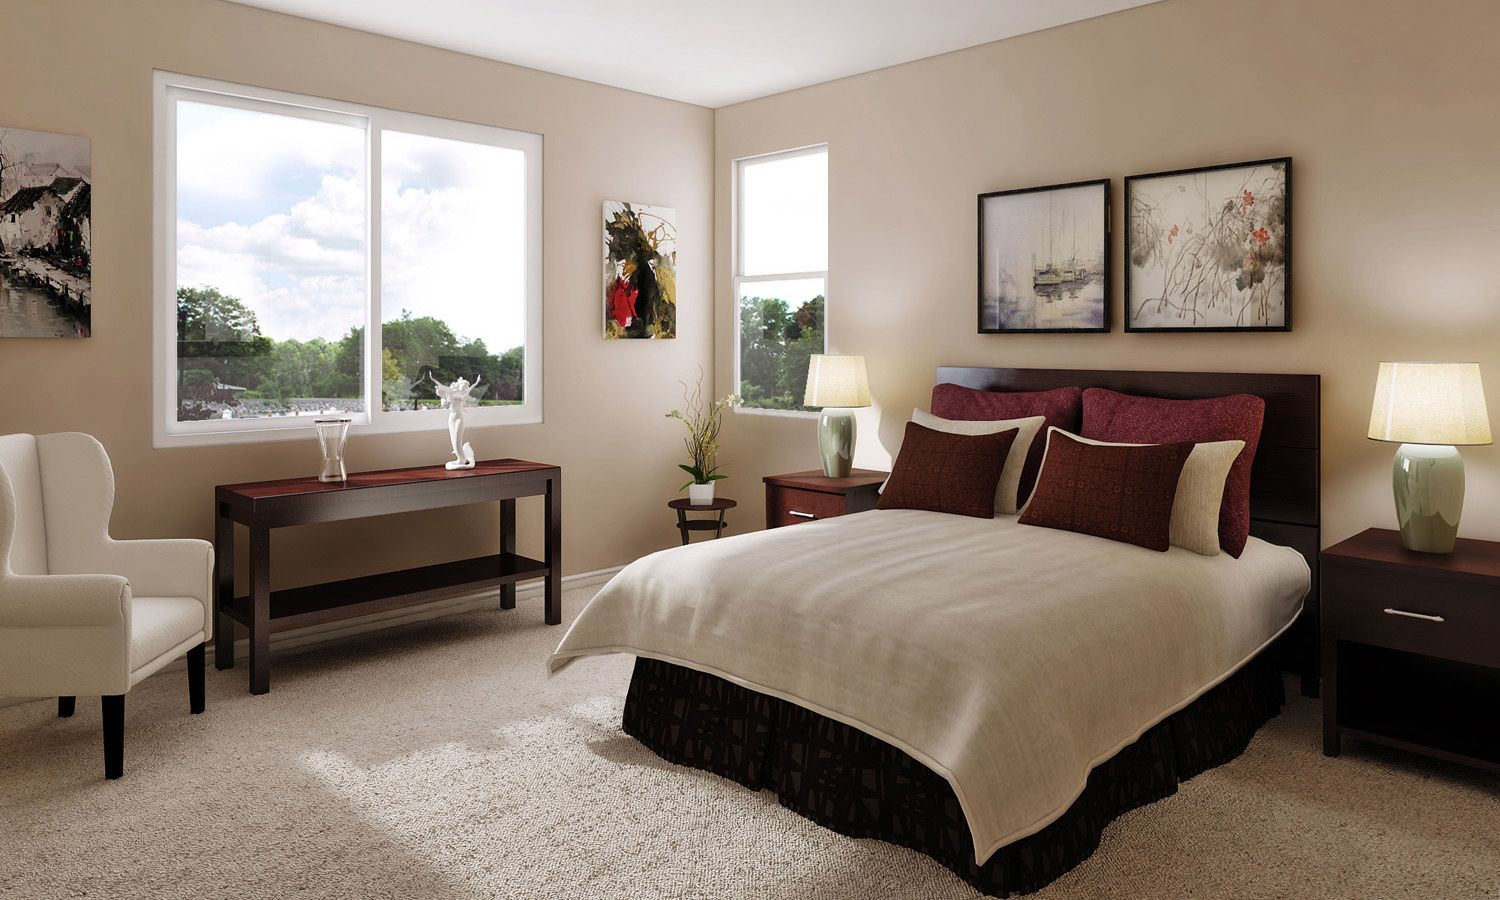 Bedroom featured in The Caledonia By Stonefield Home in Merced, CA